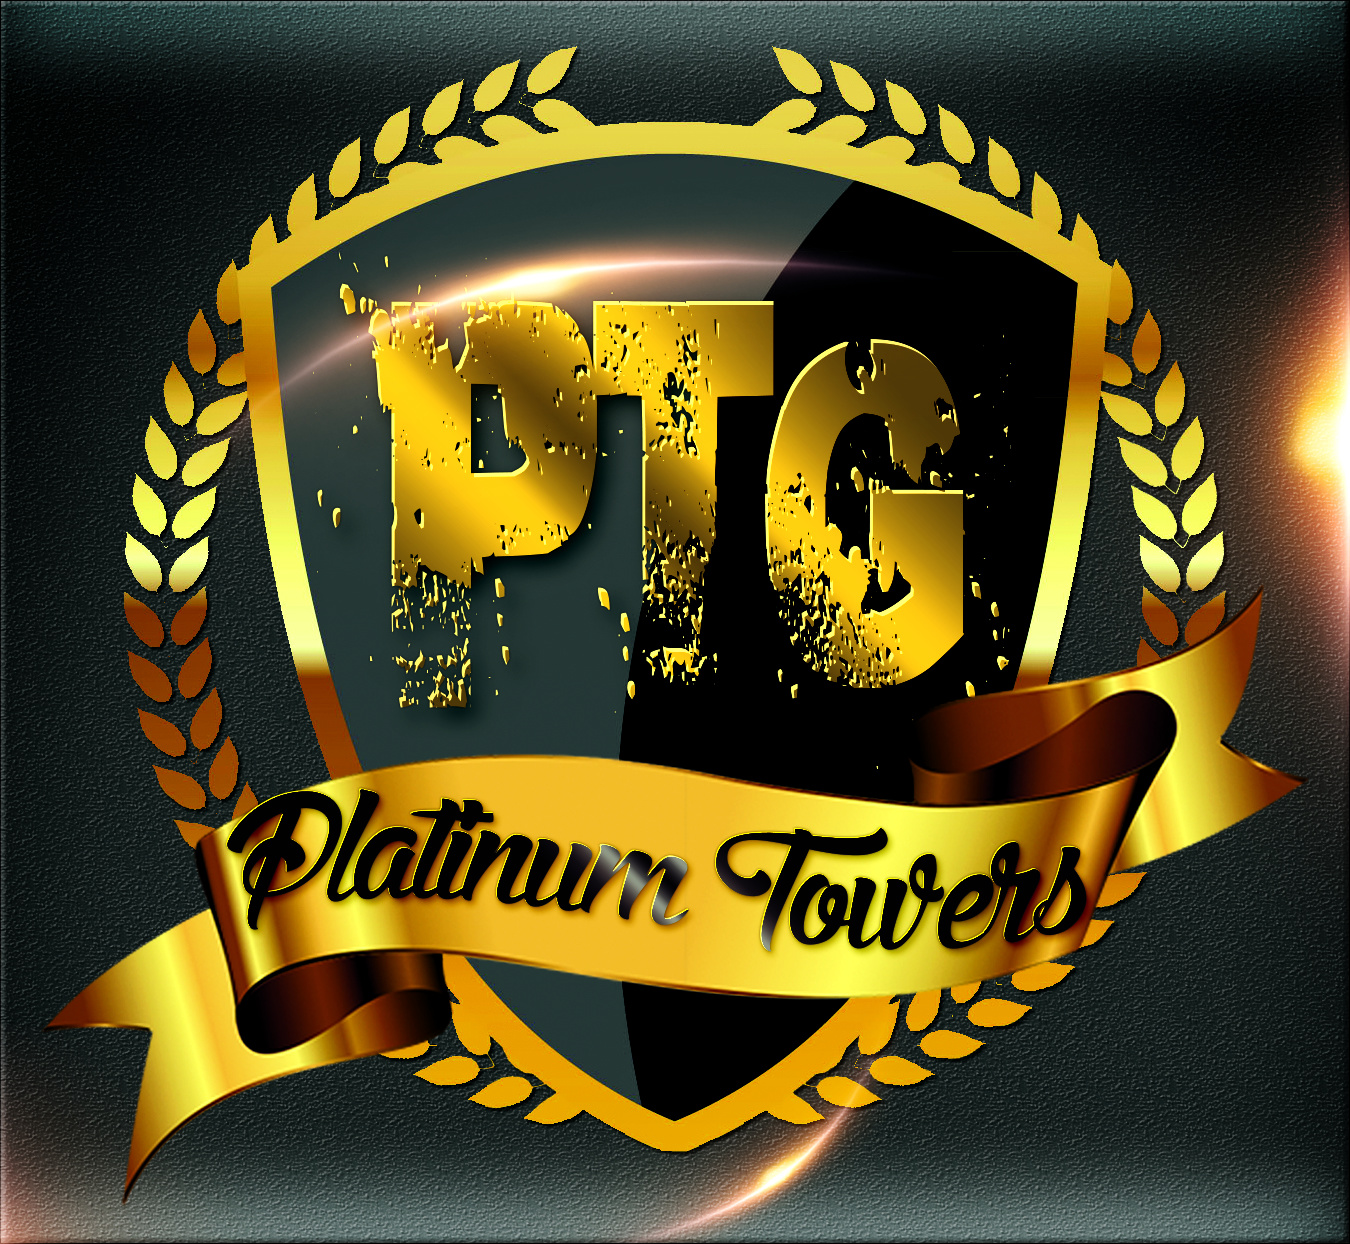 PLATINUM TOWERS GROUP